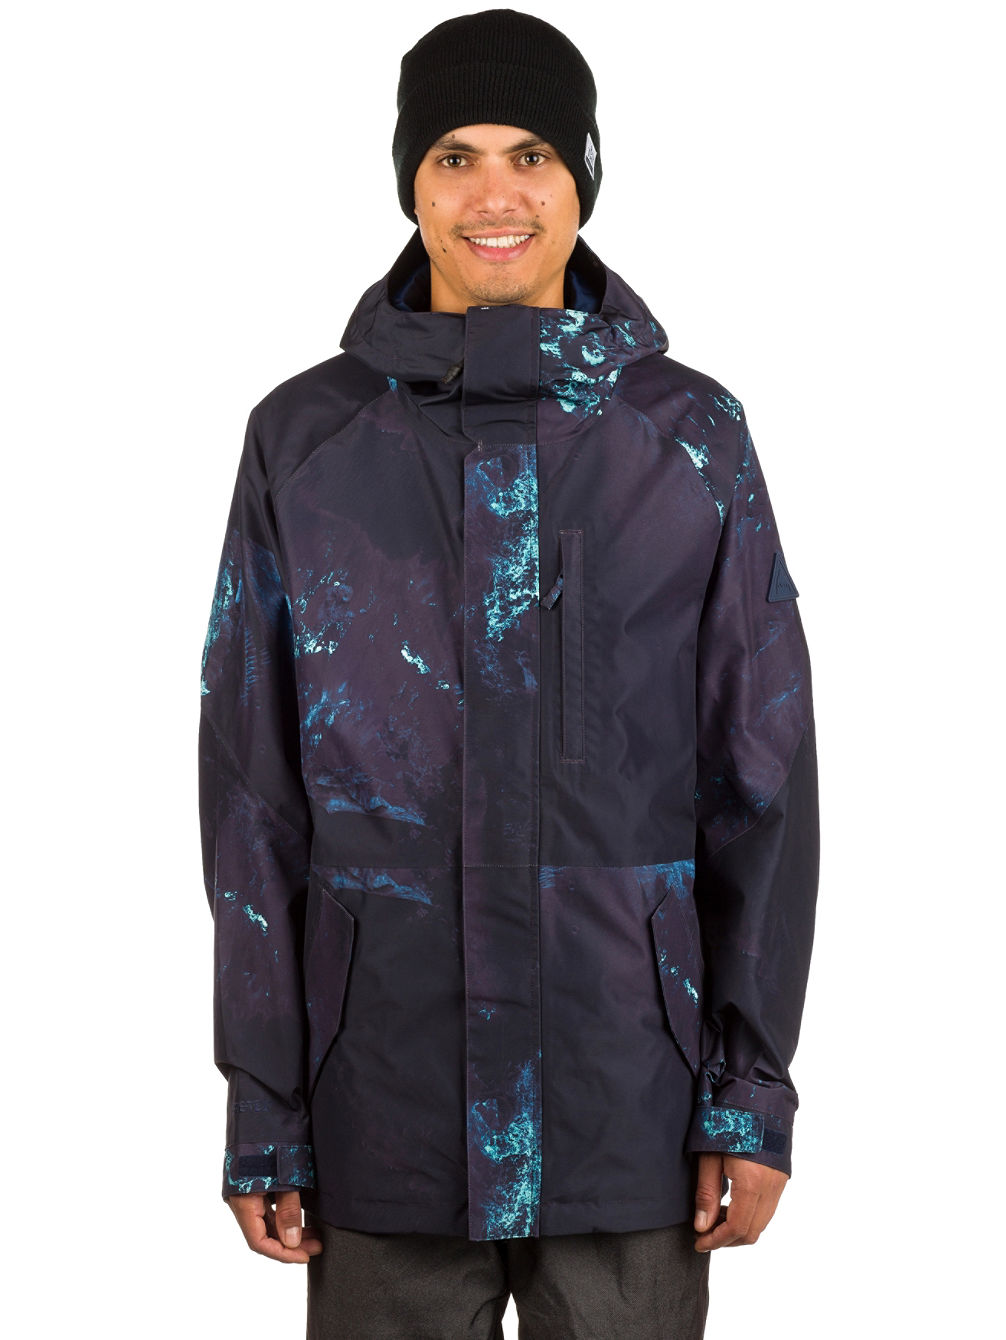 Gore Radial Shell Jacket